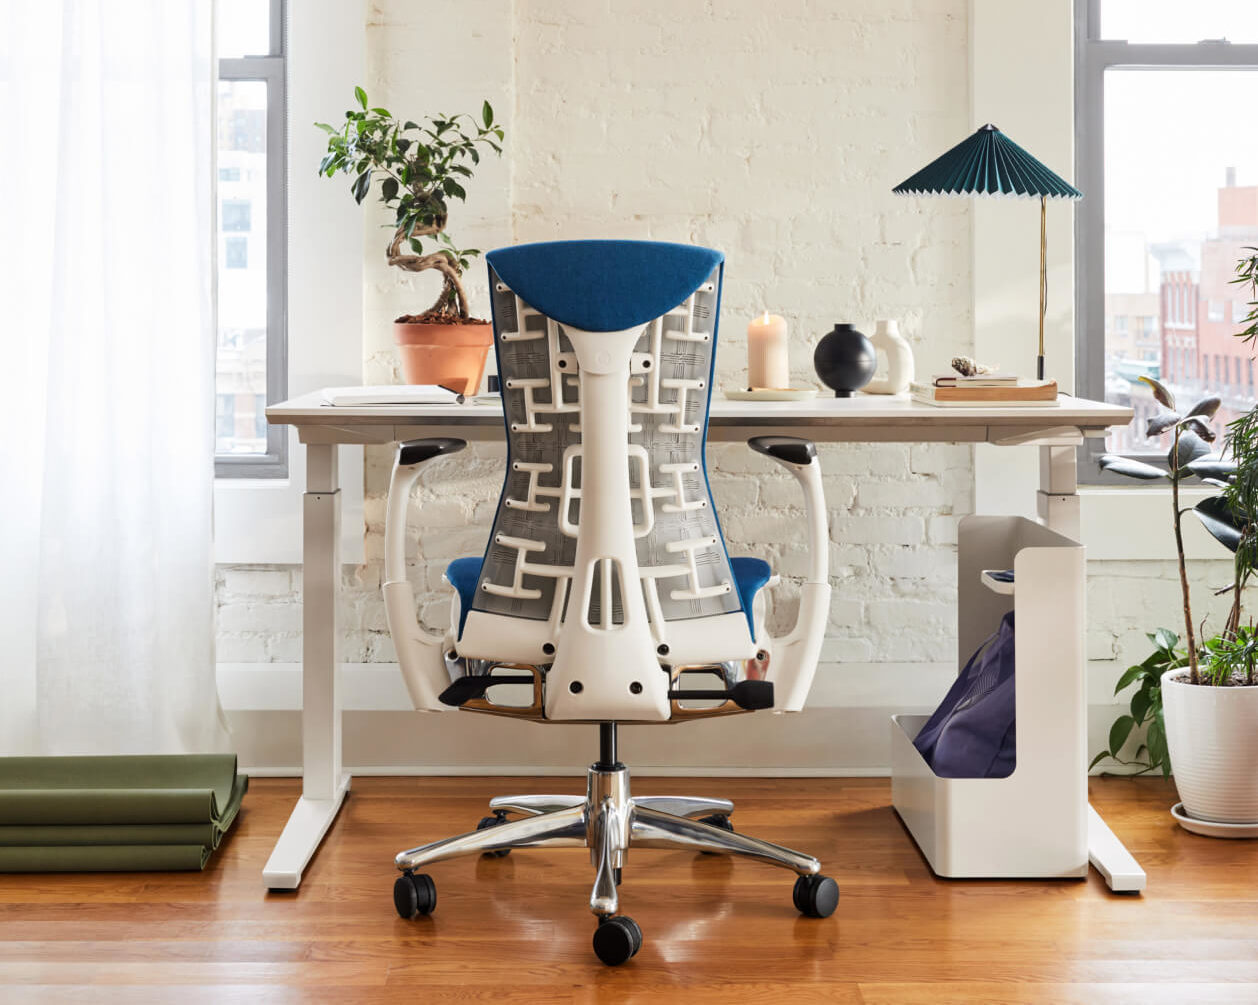 The back of an Embody chair with a white frame and blue upholstery in front of a sit-to-stand desk with Ubi Storage and a HAY table lamp in a home office.